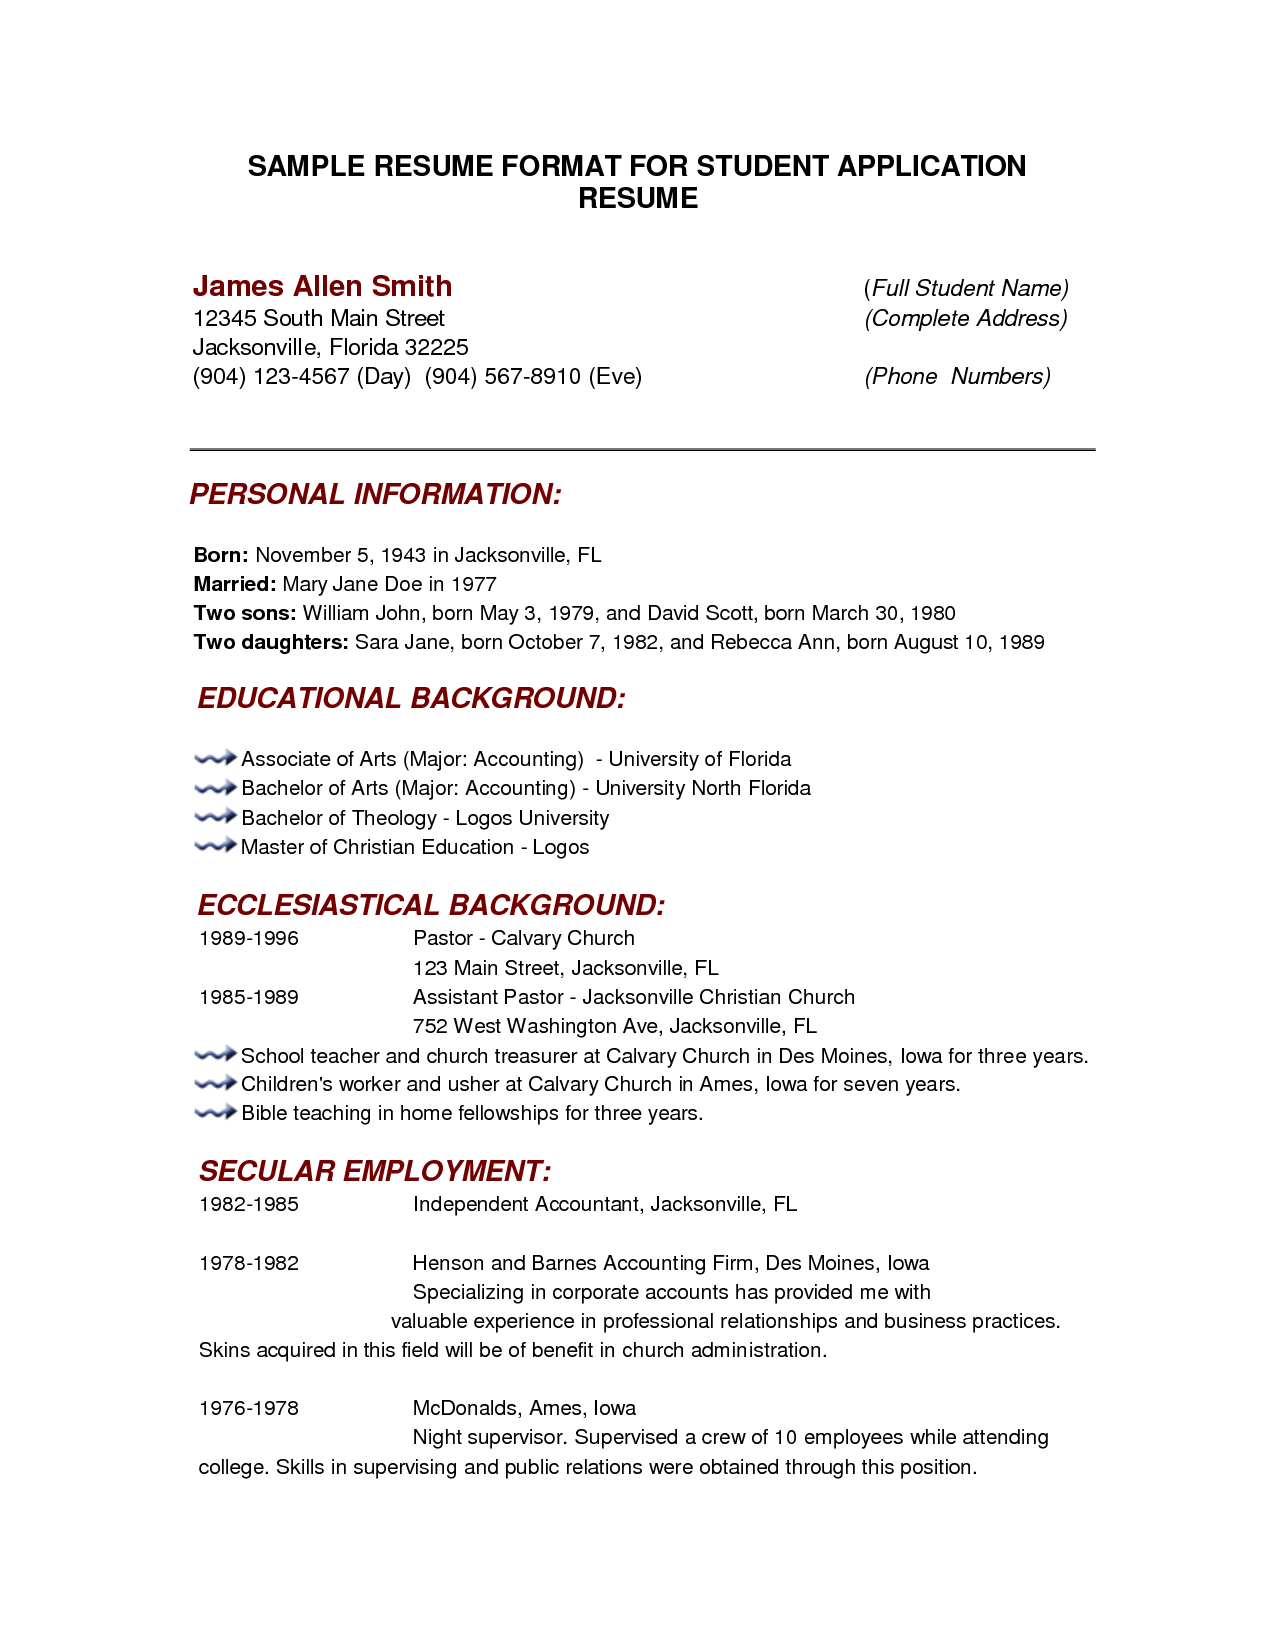 College Cover Letter Examples New High School Senior Resume For College Application  Google Search Design Inspiration